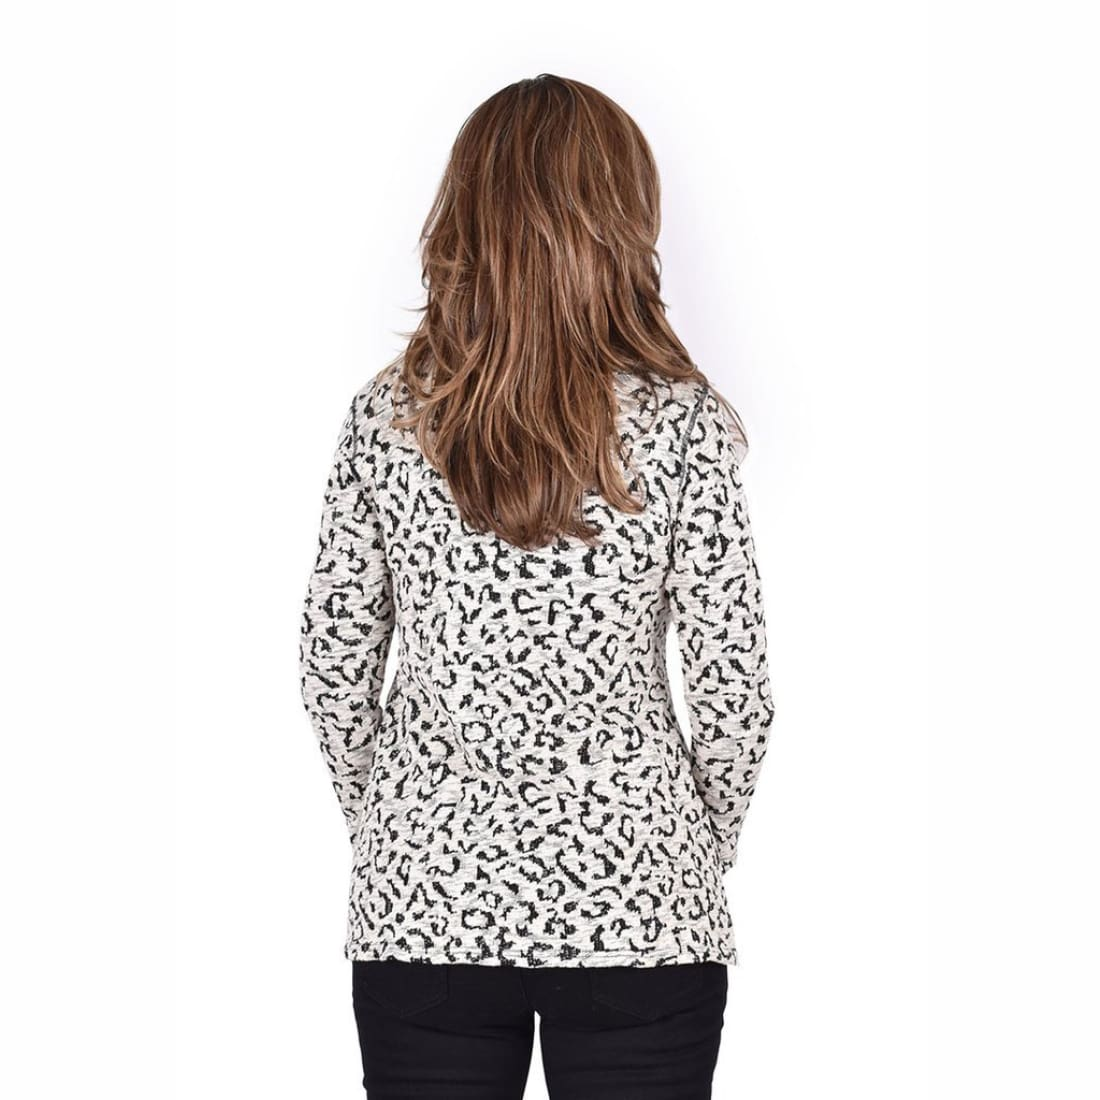 Ethyl Womens The Tiana-Violet Leopard Pullover Sweater Sweaters